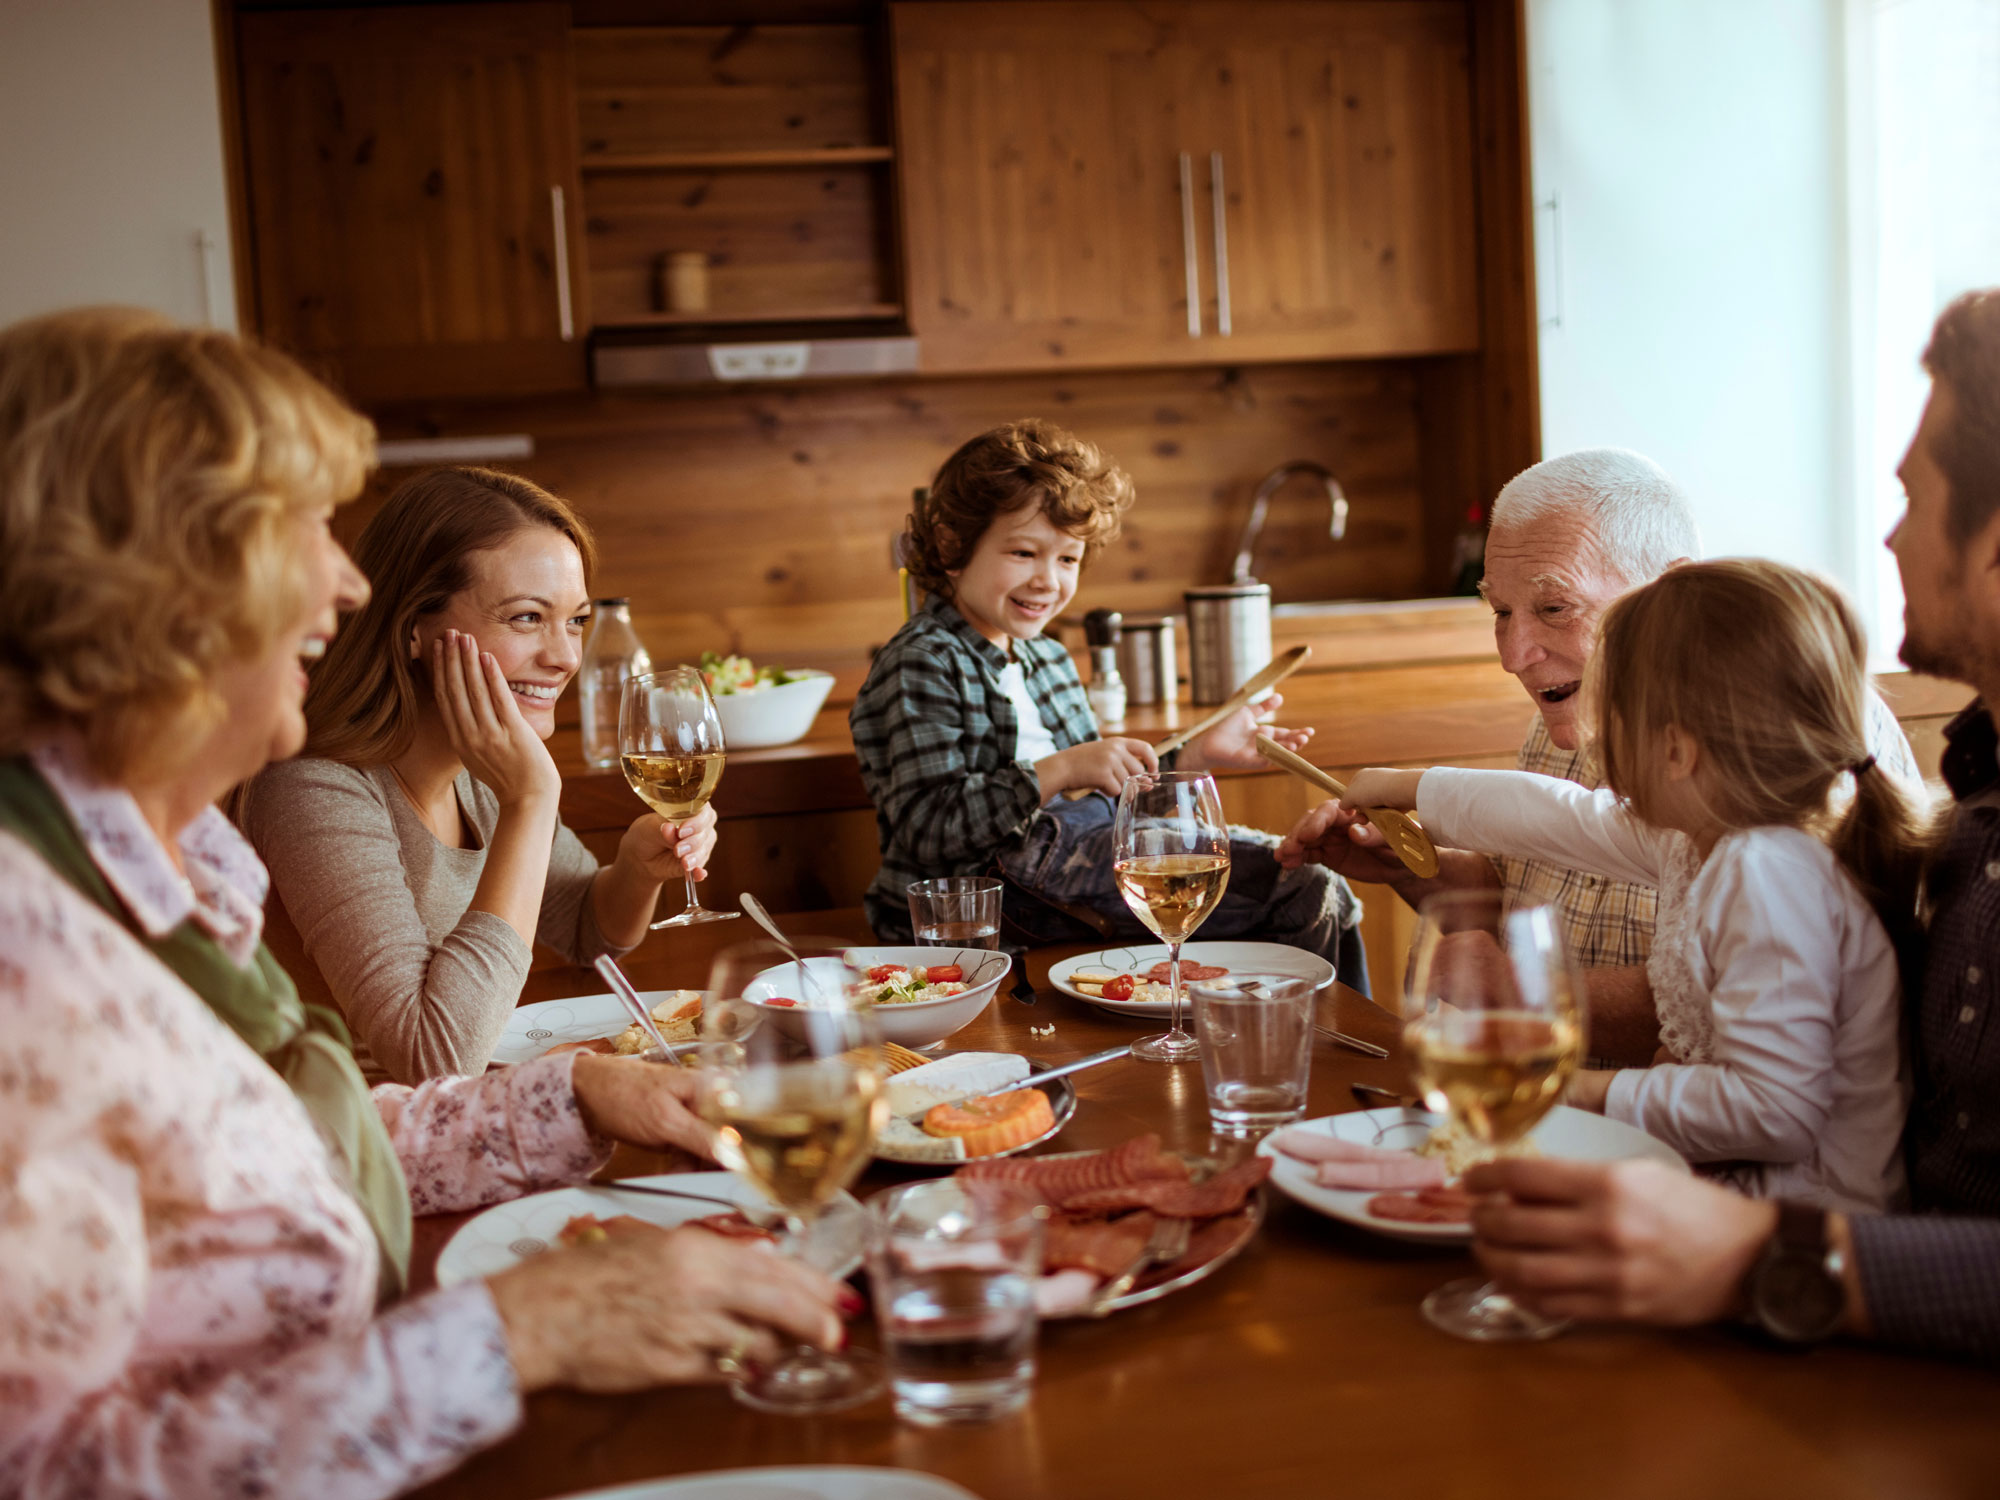 52% of Americans Tell the Same Lie to Their Families Every Holiday